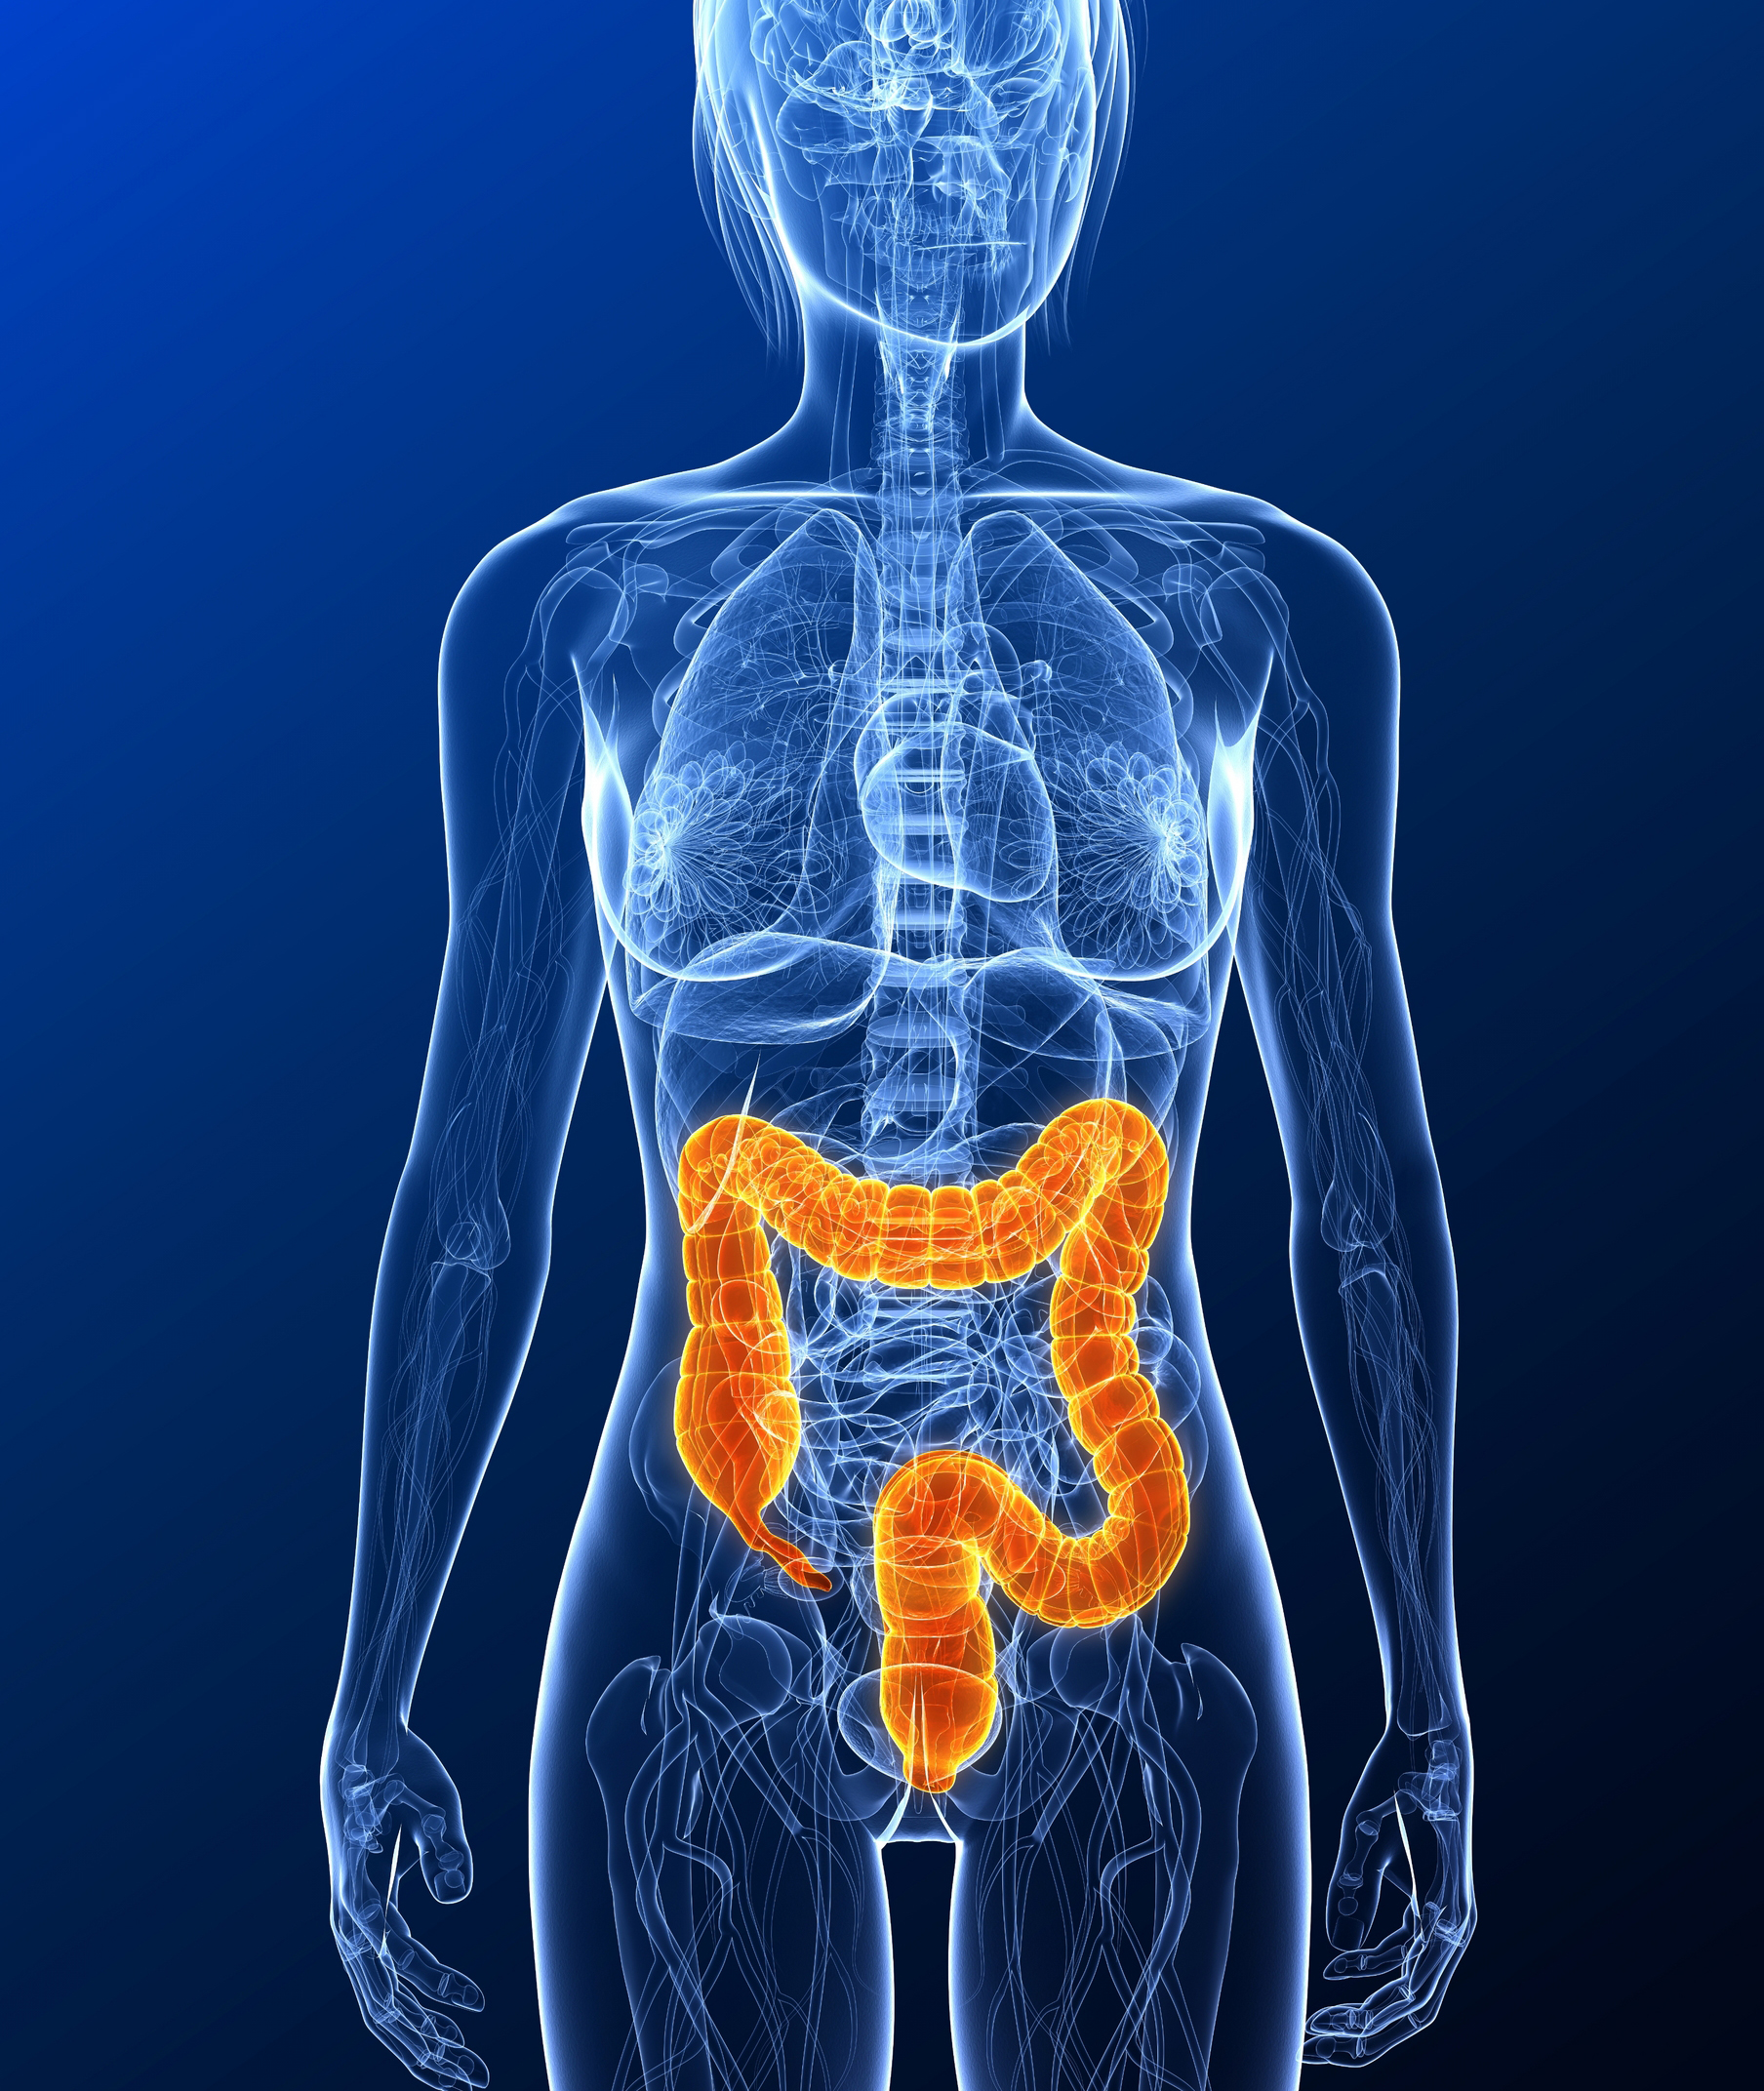 Space Travel May Increase Chances of Colon Cancer